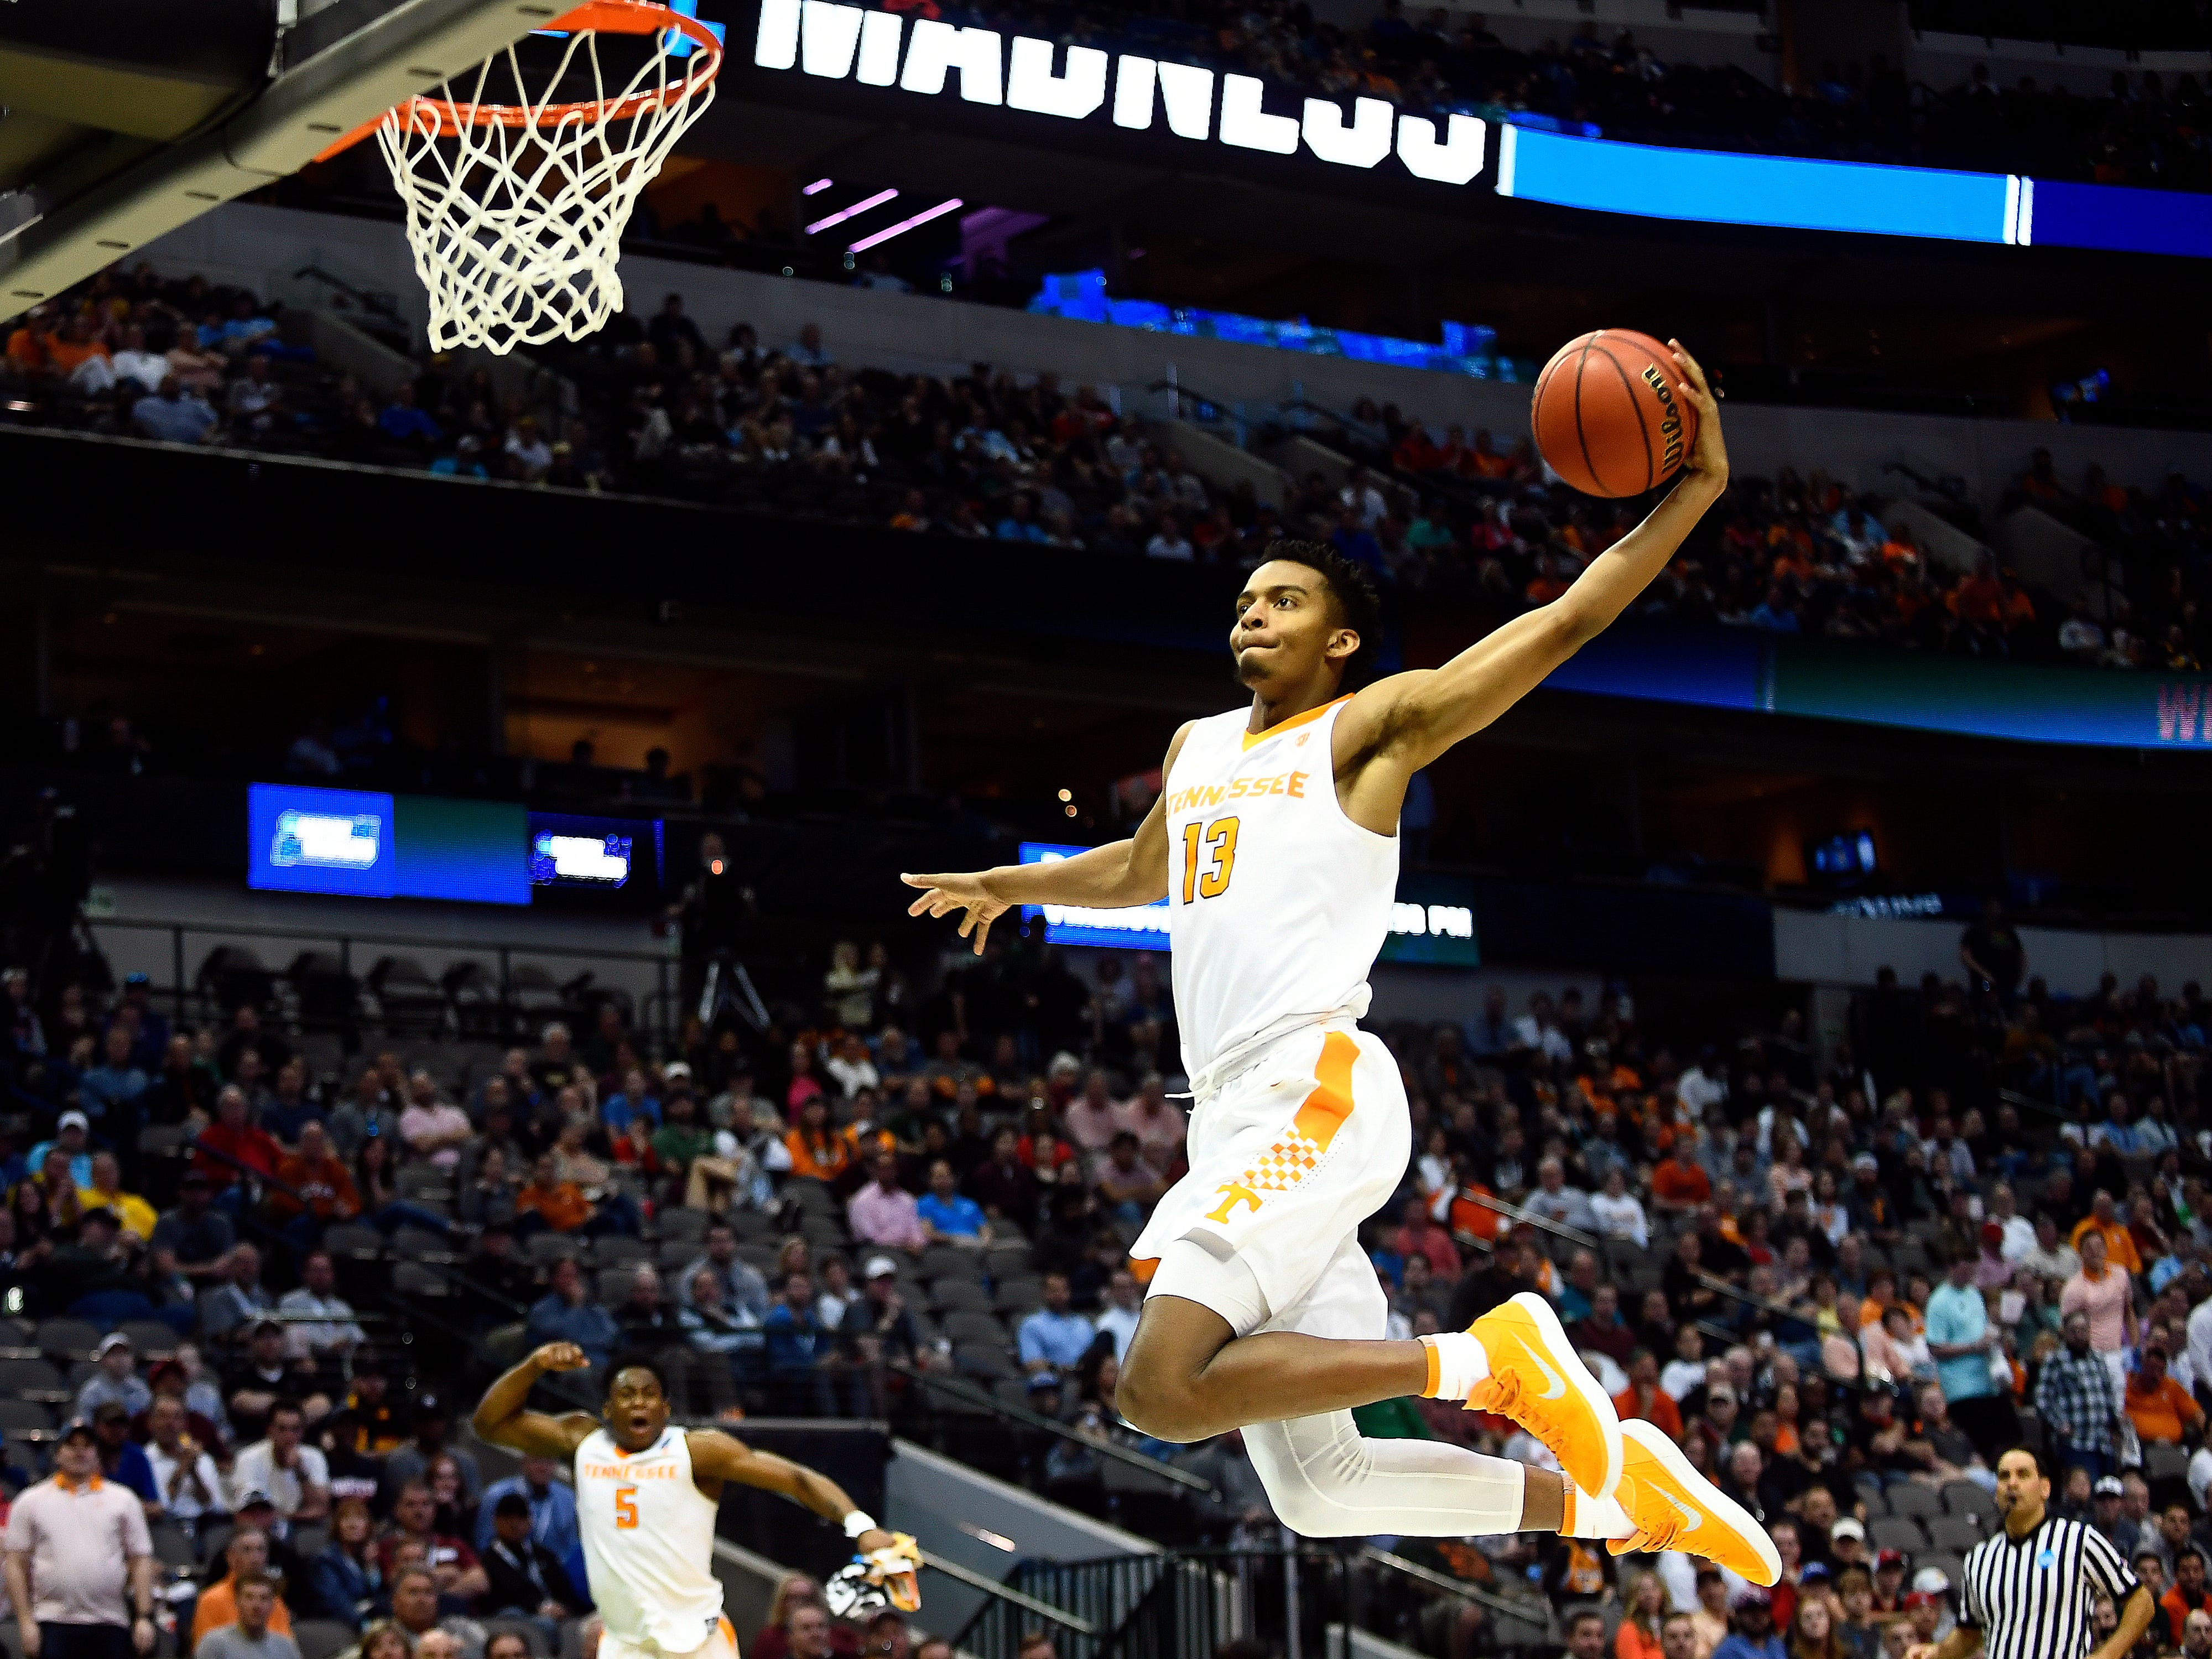 Tennessee guard Jalen Johnson (13) dunks the ball during the NCAA Tournament first round game between Tennessee and Wright State at American Airlines Center in Dallas, Texas, on Thursday, March 15, 2018.